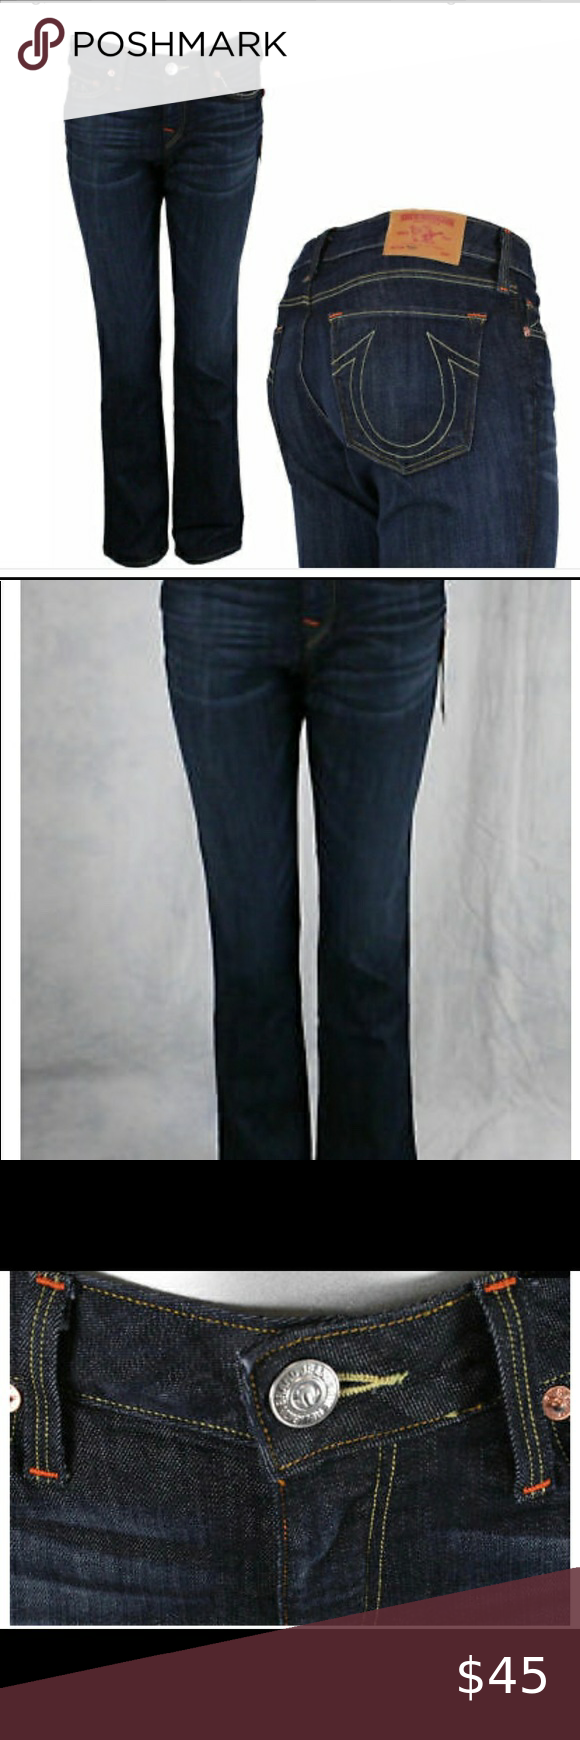 True Religion Jeans women's TONY bootcut Luckdraw Women's True Religion brand jeans.  The style is called Tony, the color is TIM-Luckdraw style #WLHS69P98 They are a micro bootcut with a high rise in a dark wash, made of 88% cotton, 10% polyester, 2% spandex. They have golden stitching and standard hardware with a leather label on the waistband. True Religion Jeans Boot Cut